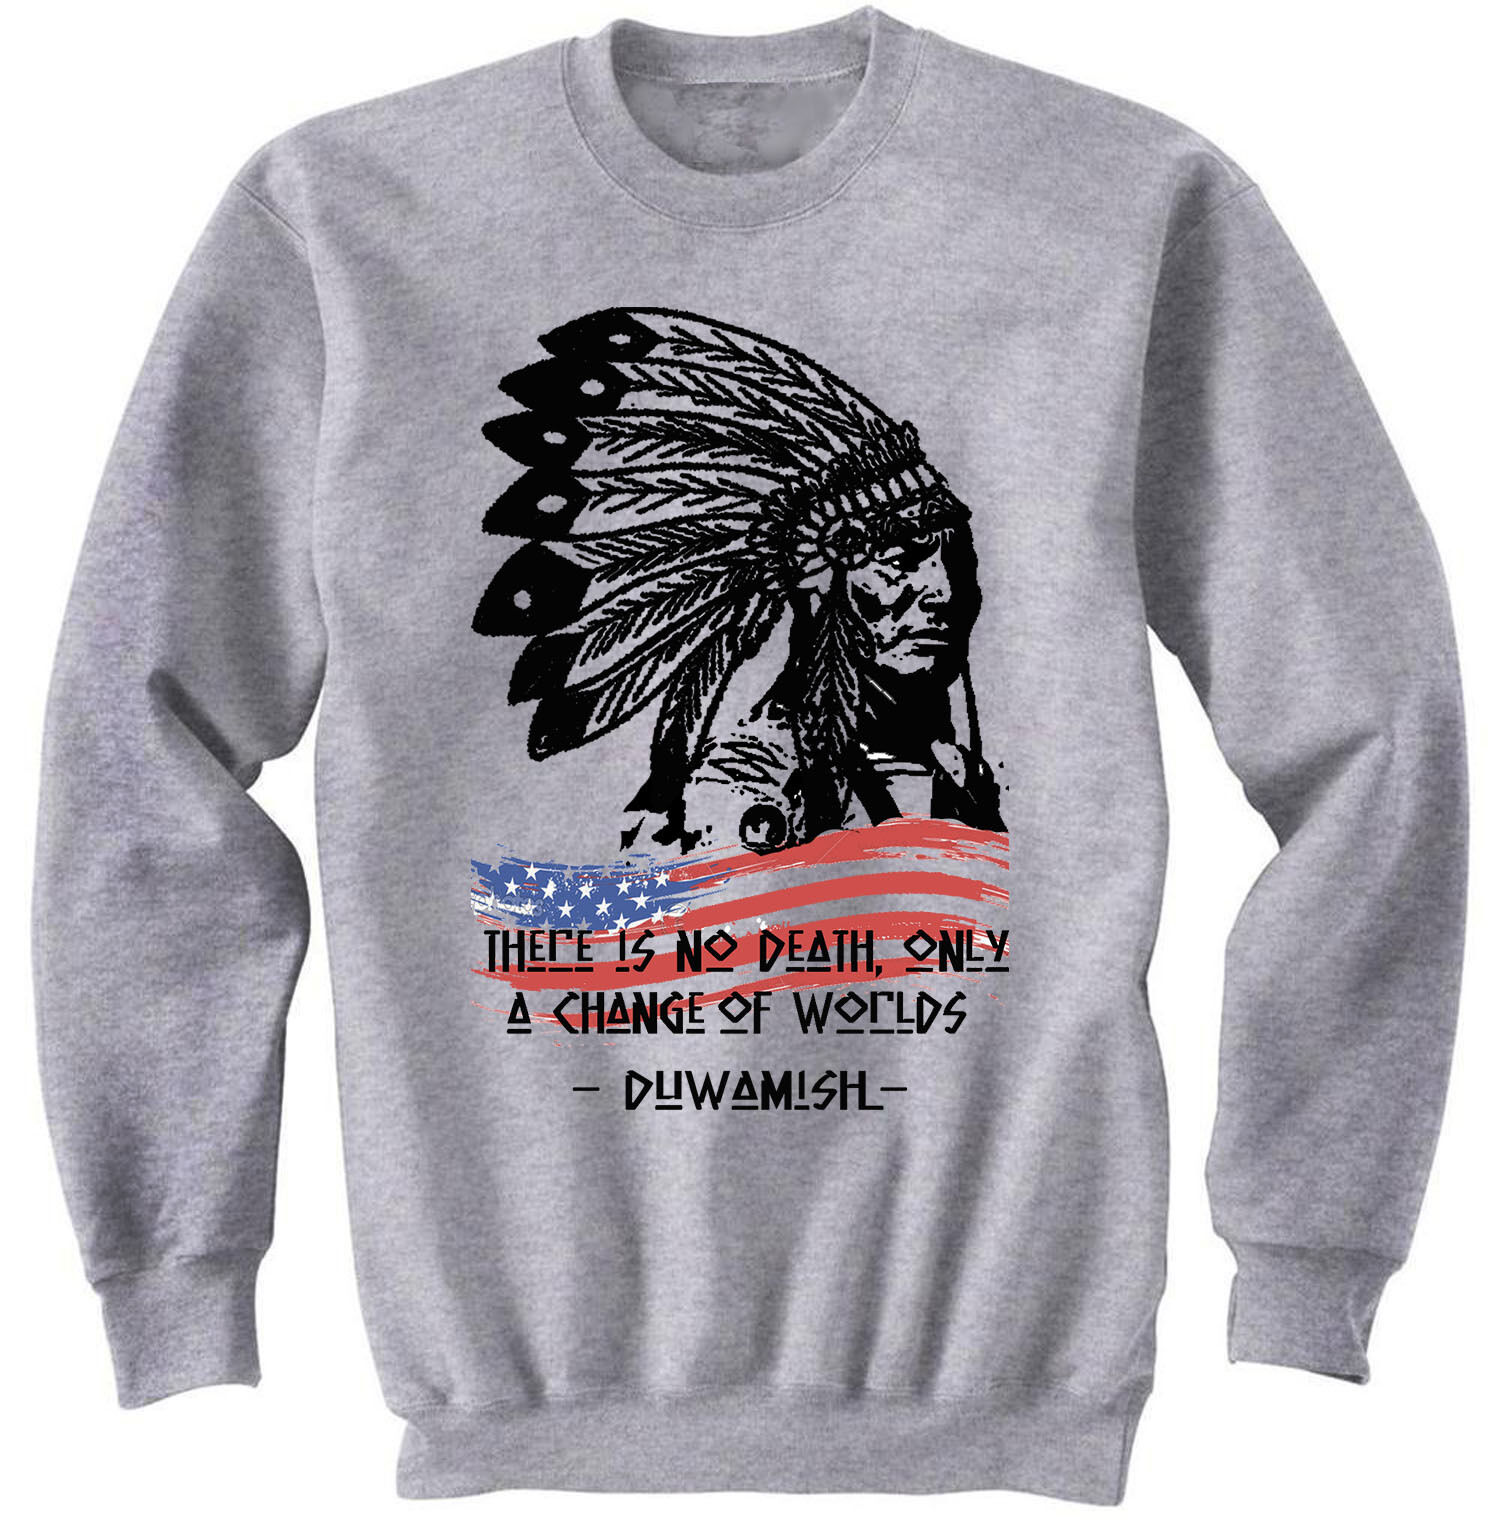 AMERICAN NATIVE INDIAN NO DEATH QUOTE - COTTON GREY SWEATSHIRT- ALL SIZES